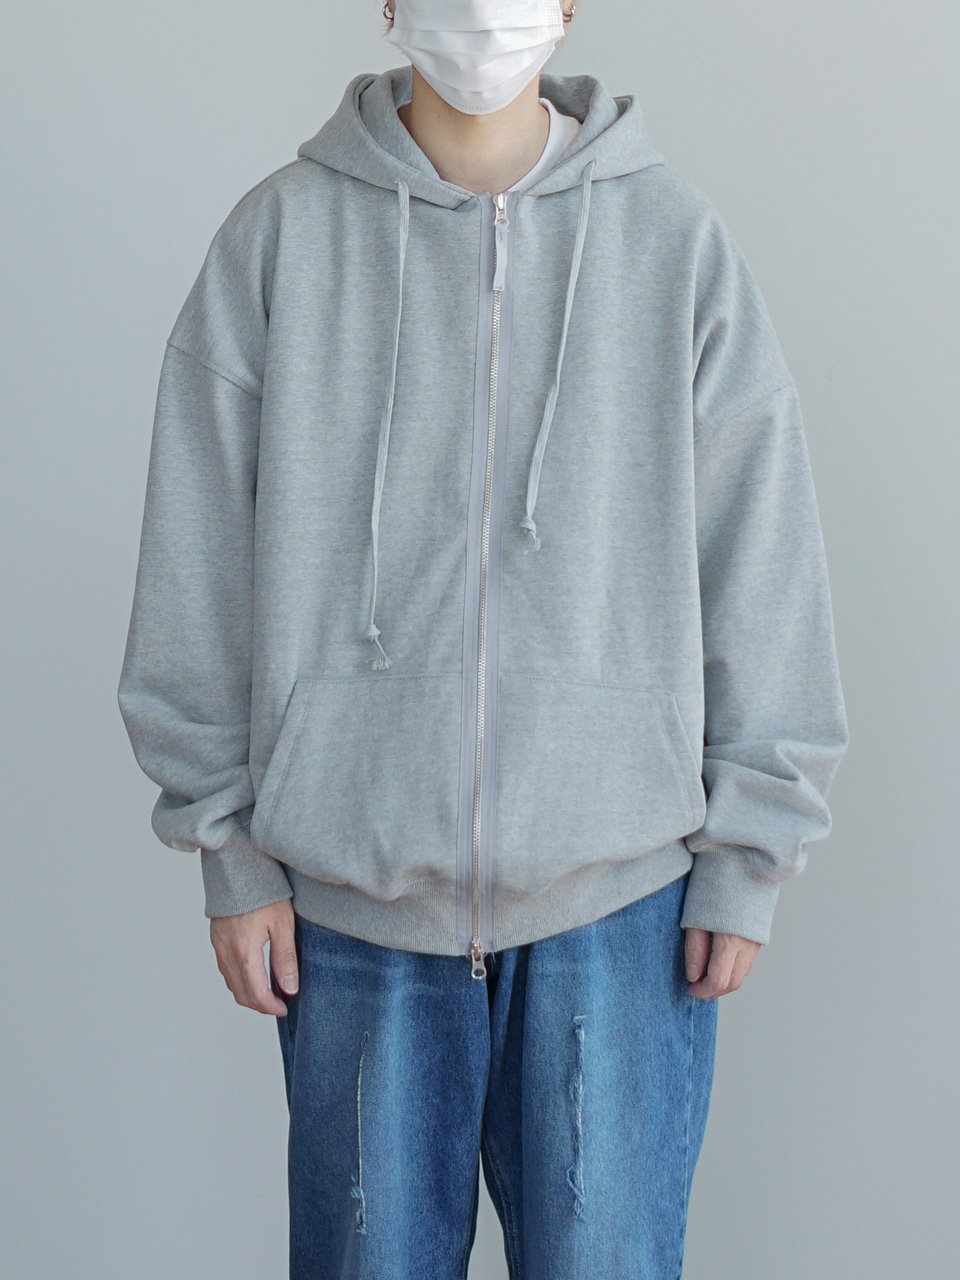 Lililc Hood Zip-Up (5color)